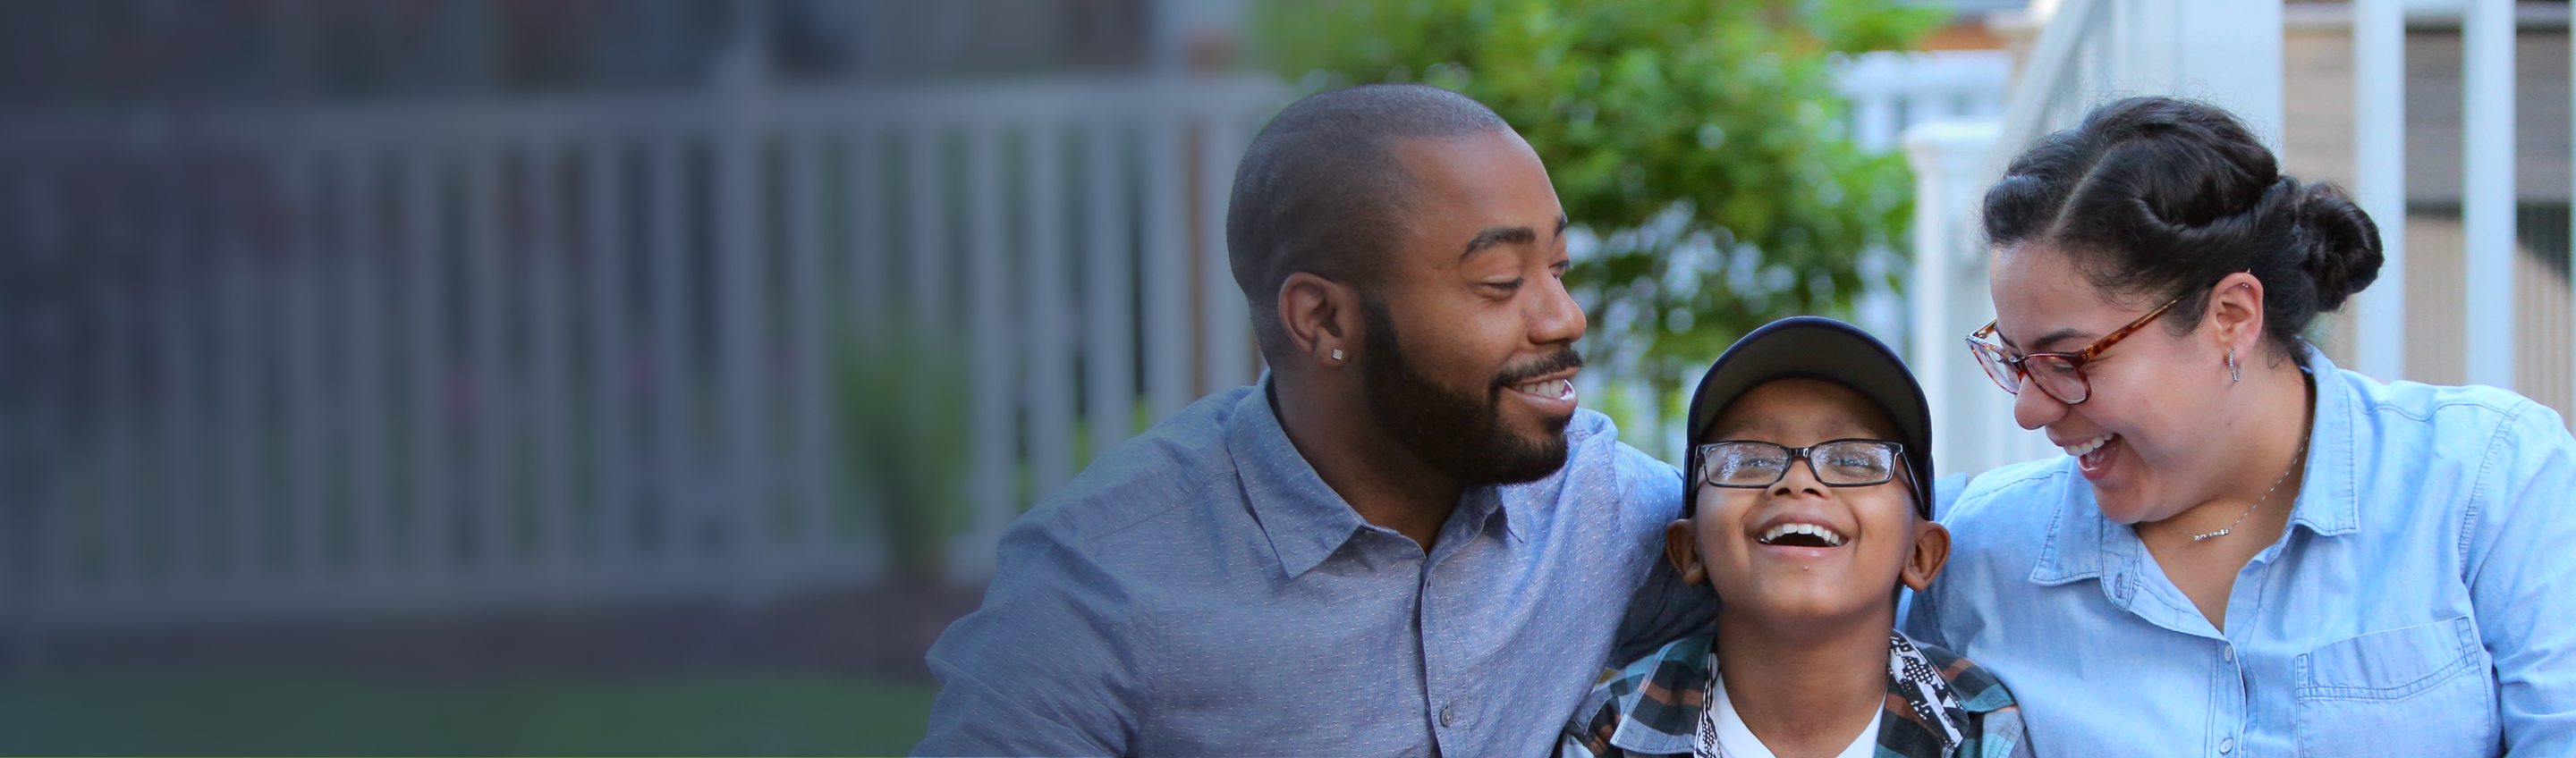 An RMHC family, son between mom and dad, laughing together on their porch, white fence in soft focus in background